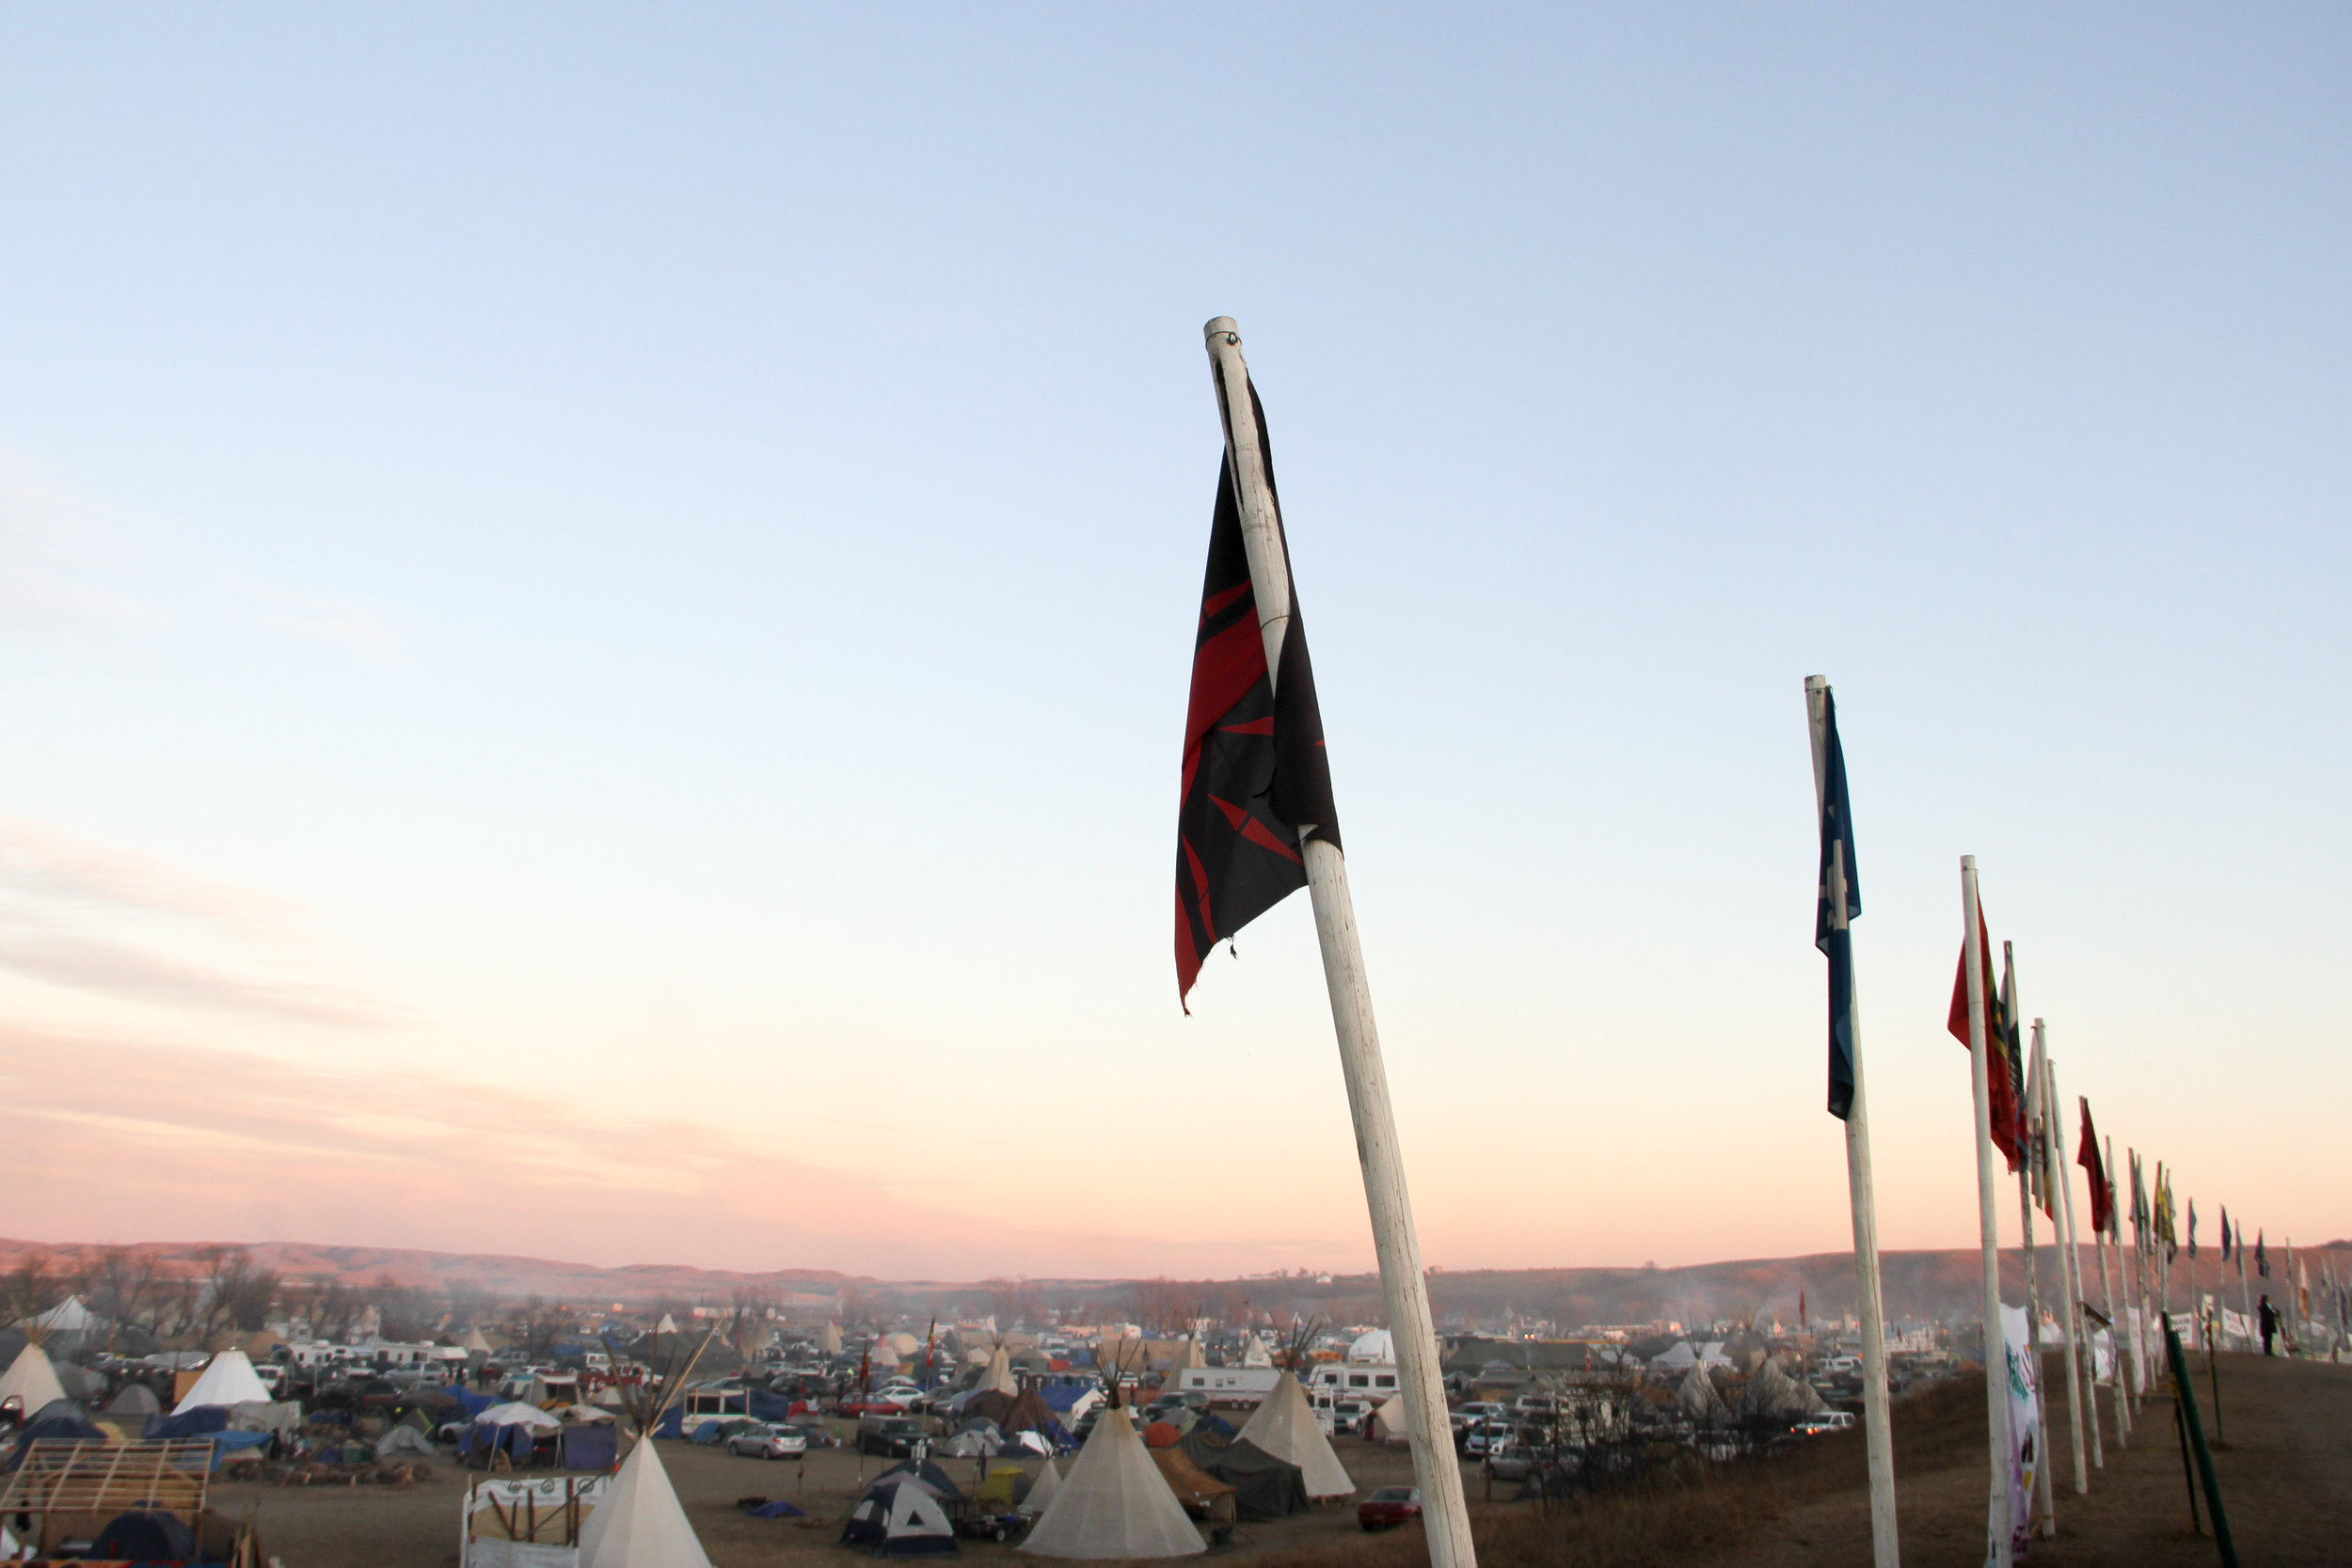 Flags from many tribes line the entrance of Oceti Sakowin Camp. Photo by Tania Ellersick